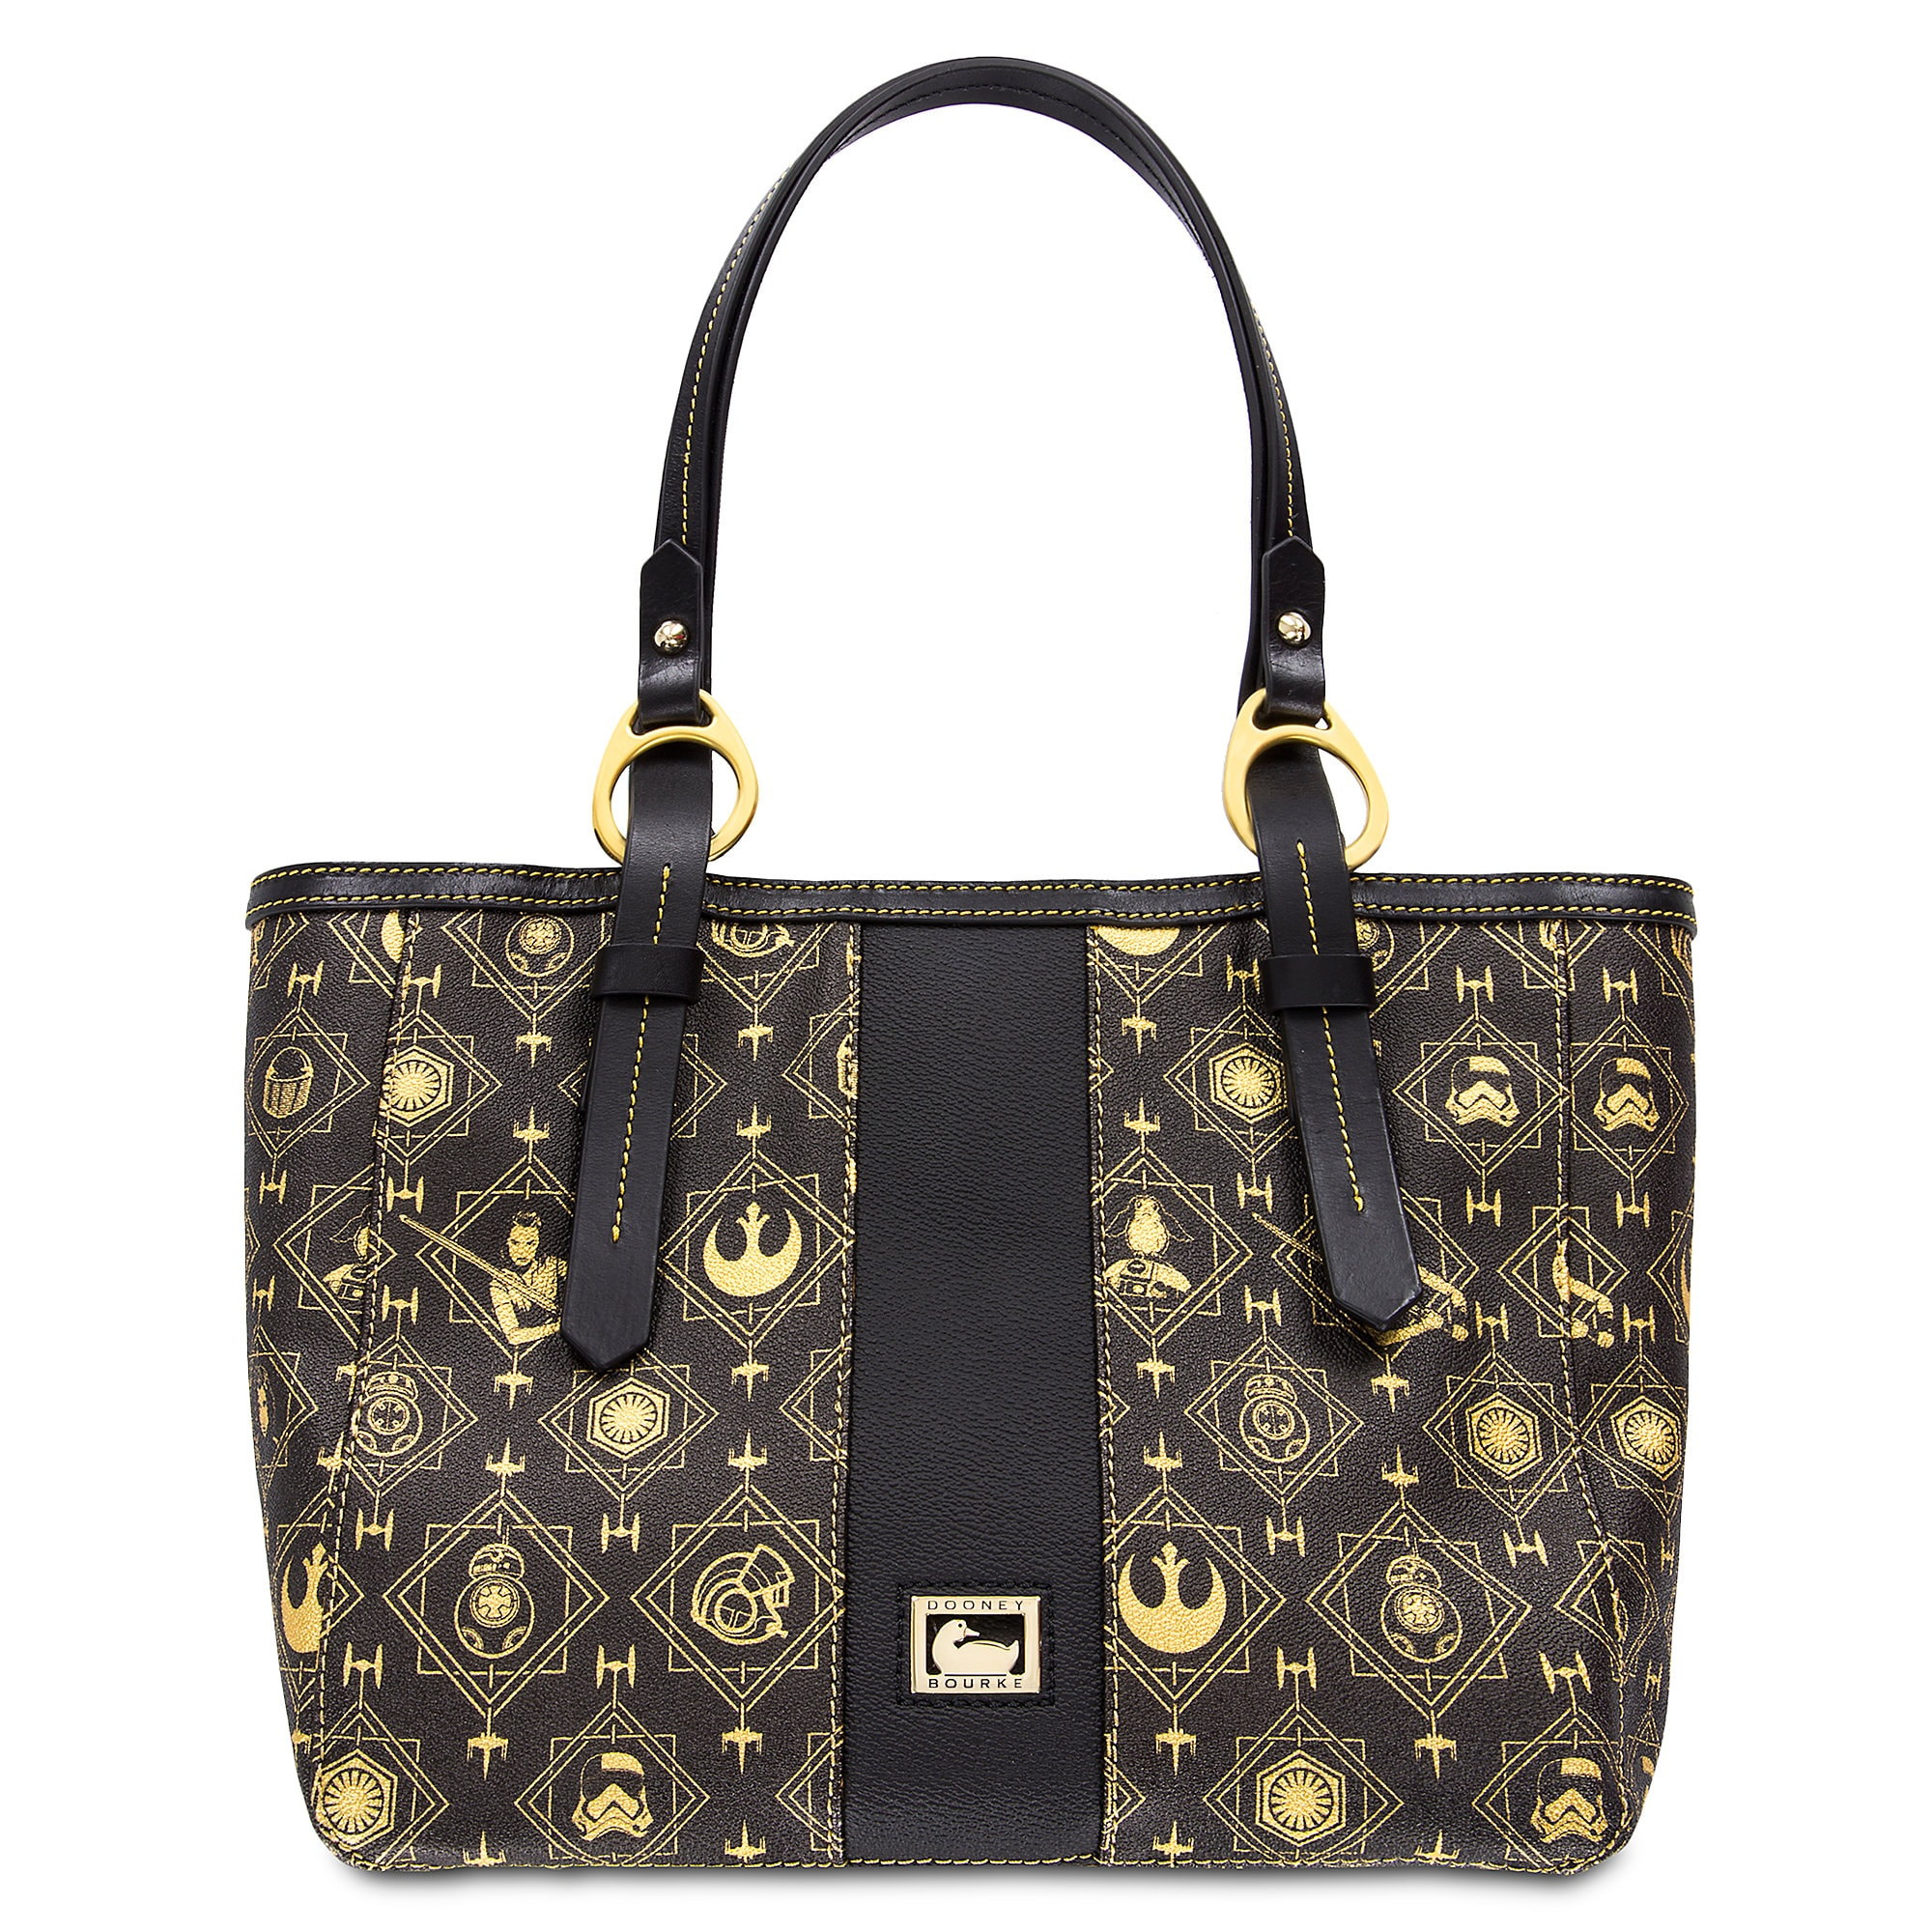 Star Wars: The Last Jedi Tote by Dooney & Bourke